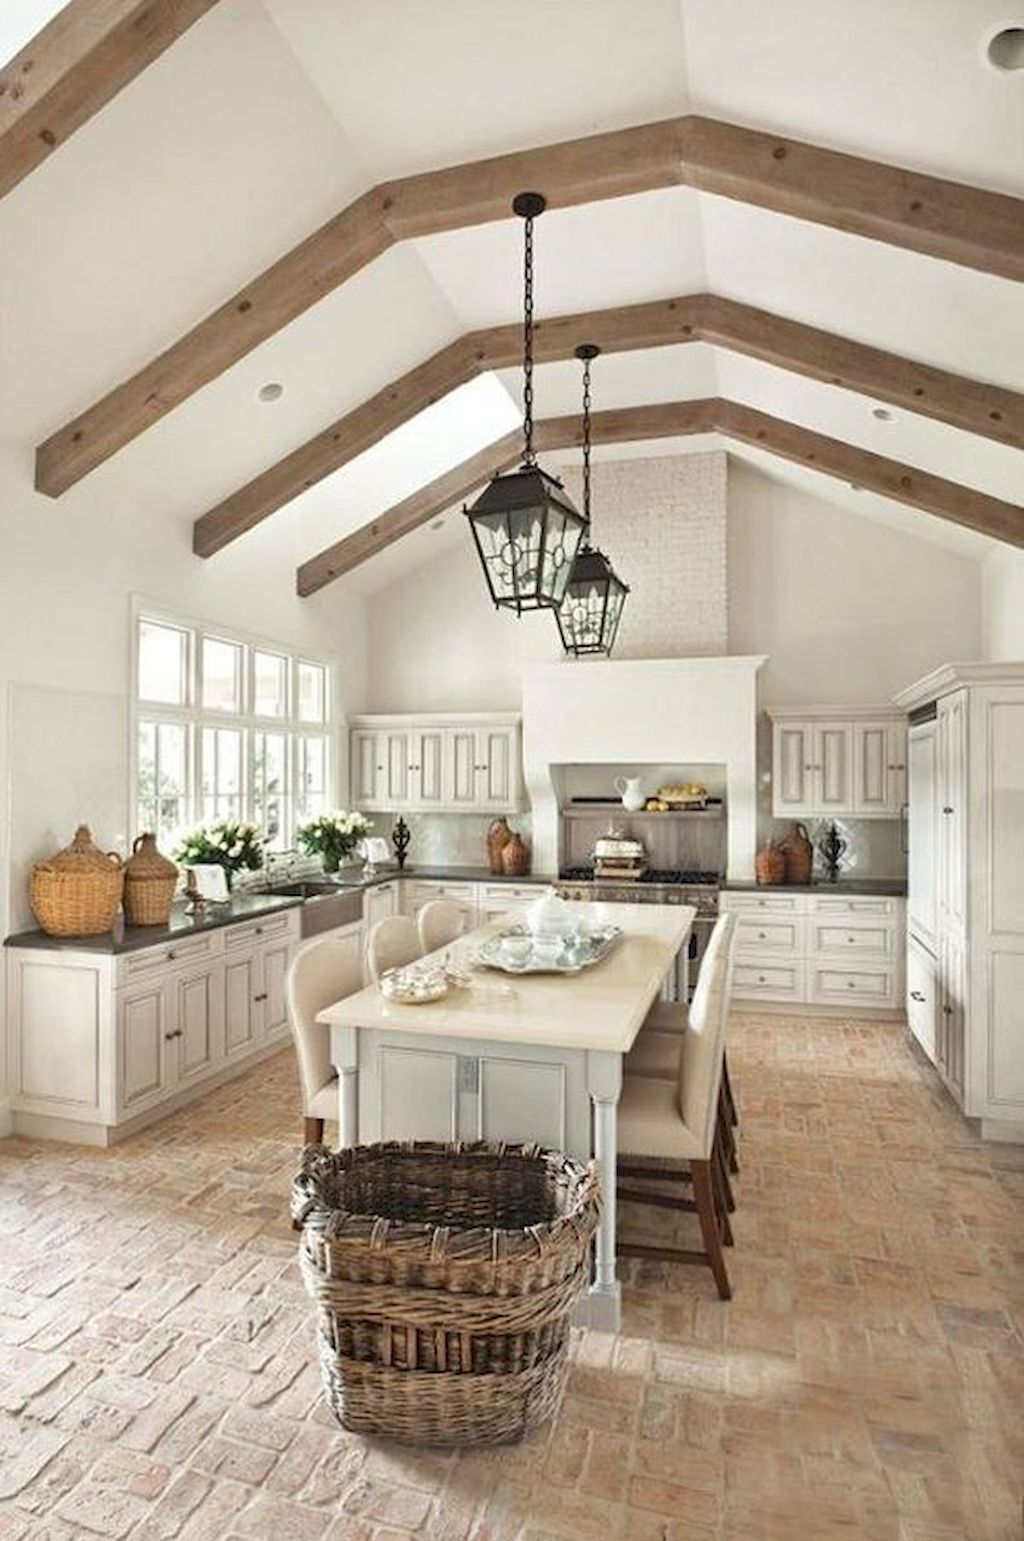 Pin by Erin Smith on My favs home | Pinterest | Modern farmhouse ...